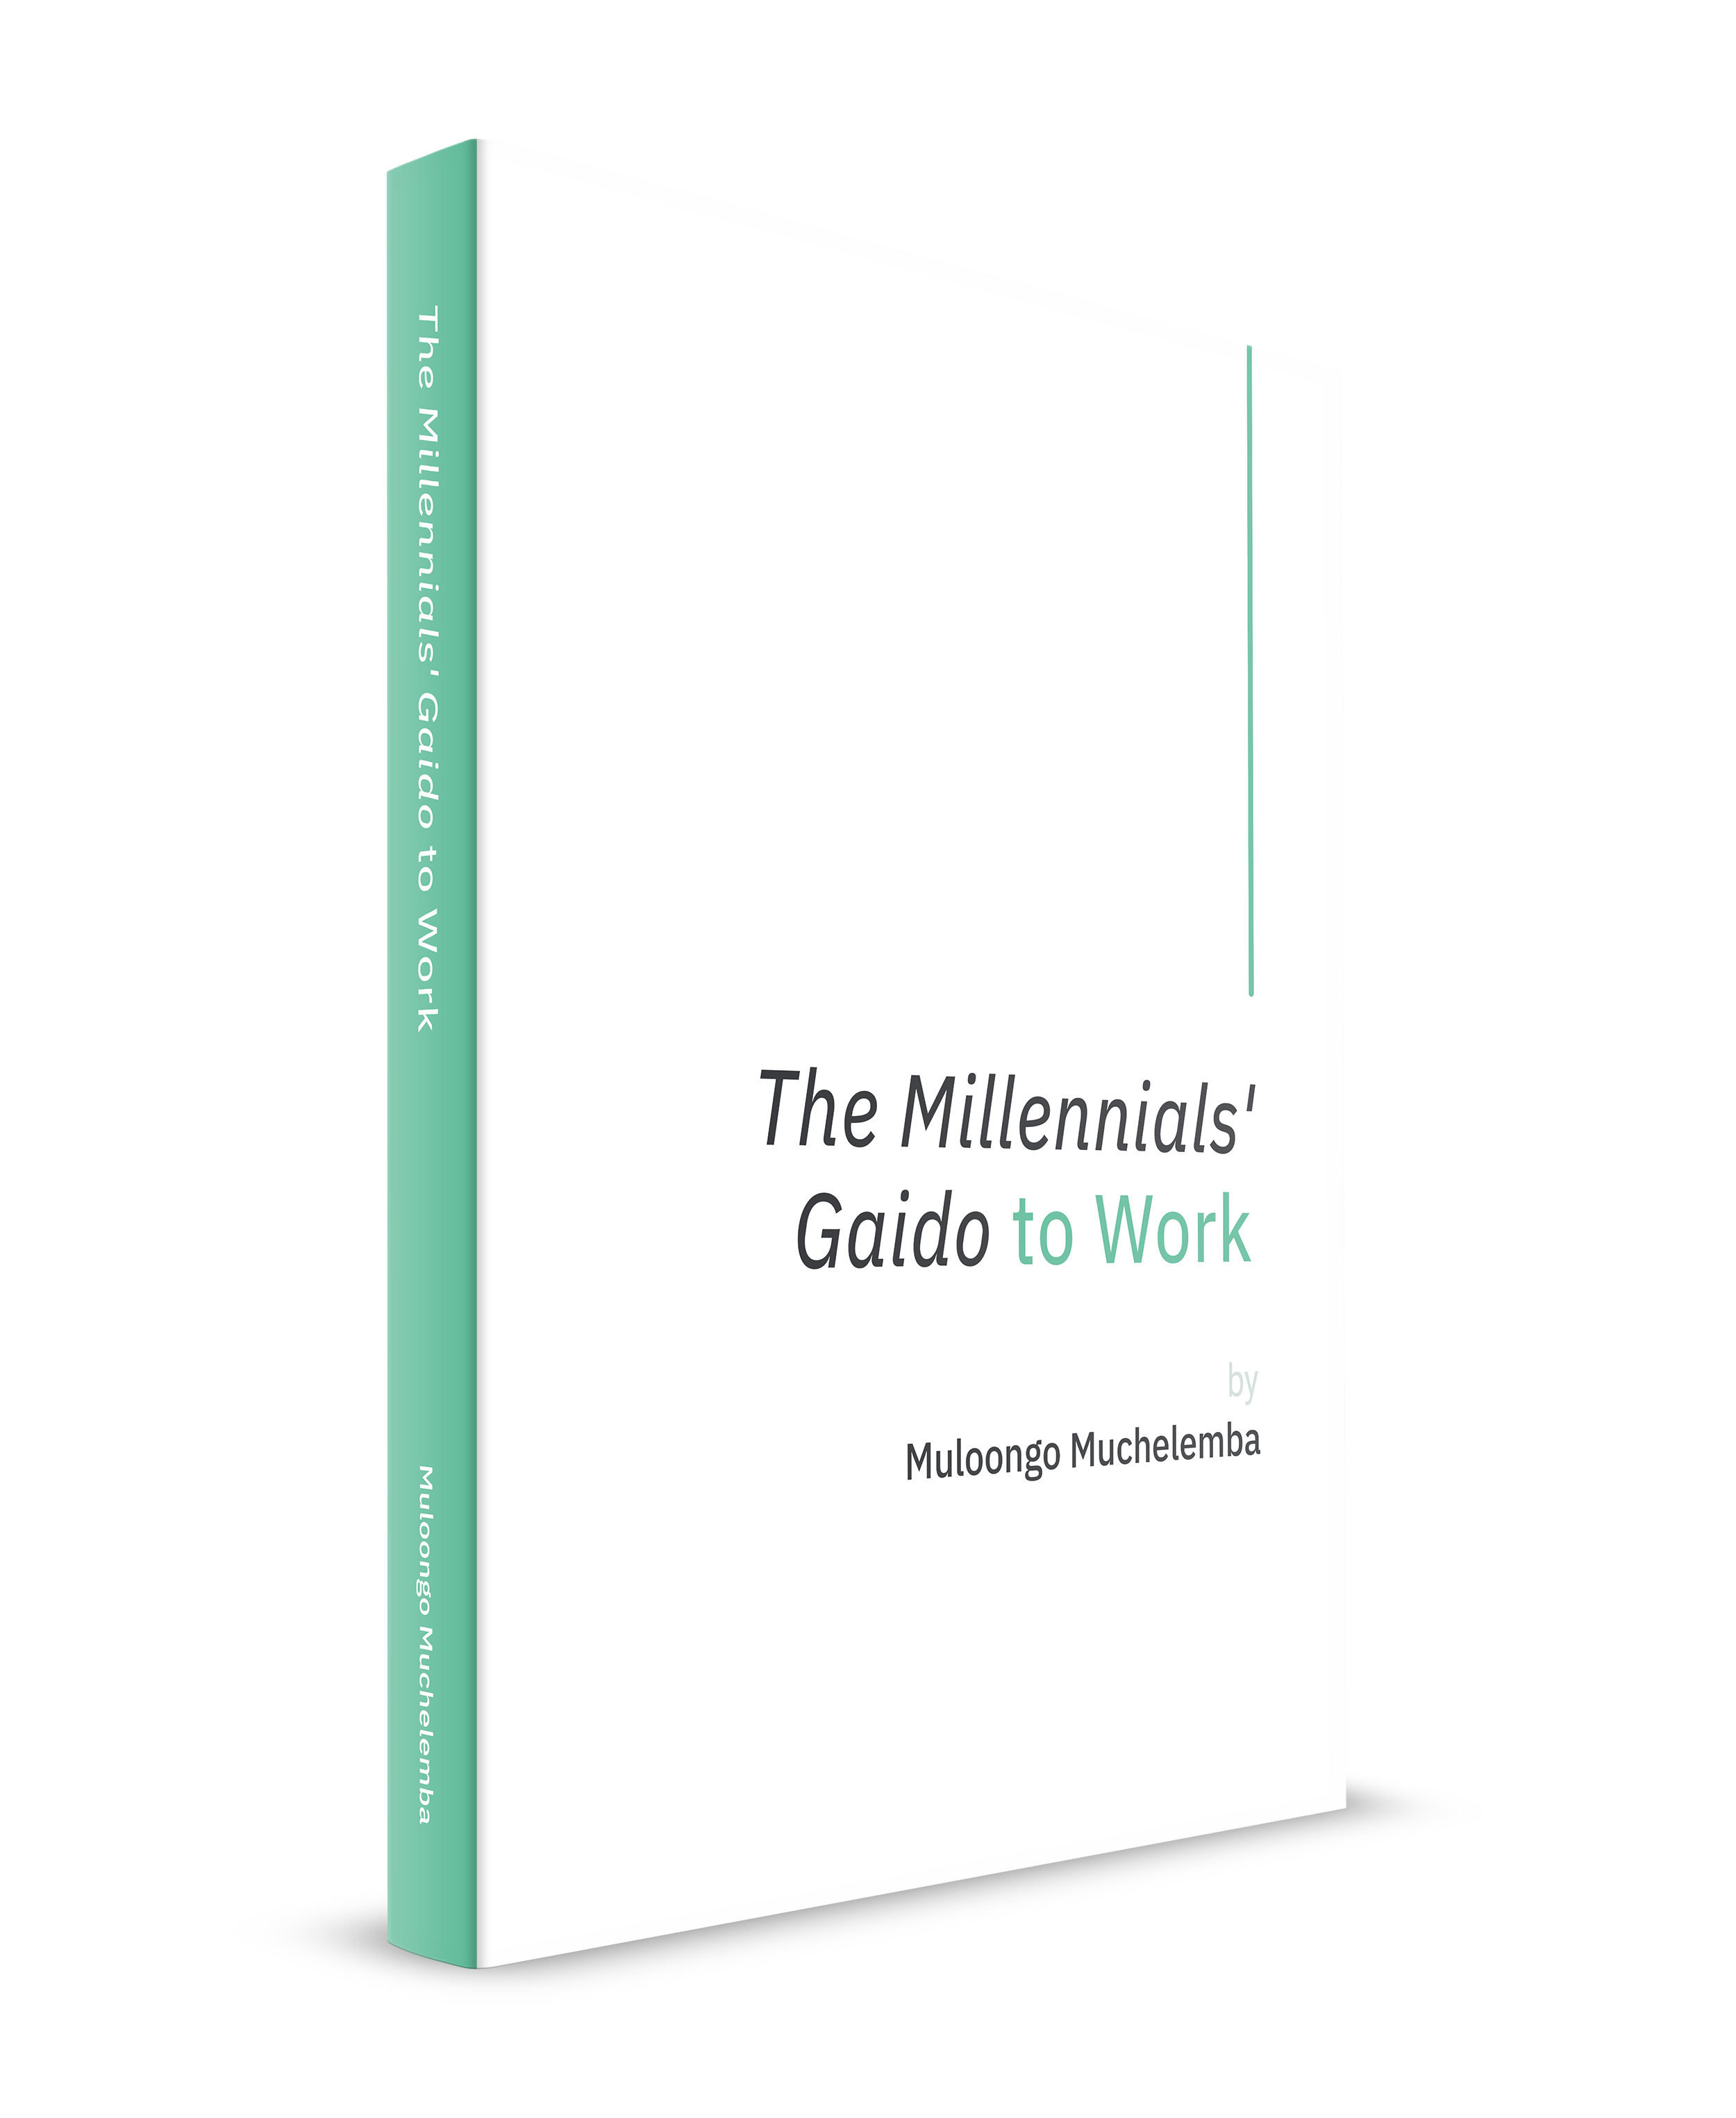 The Millennials' Gaido to Work